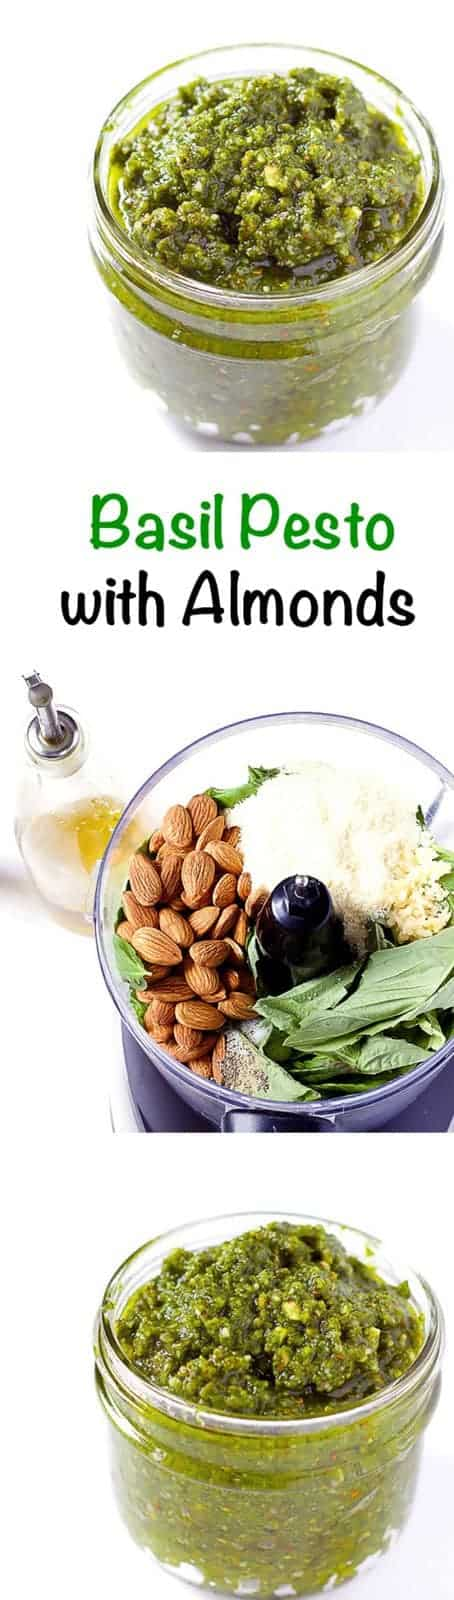 3 image collage with text showing Basil Pesto with Almonds